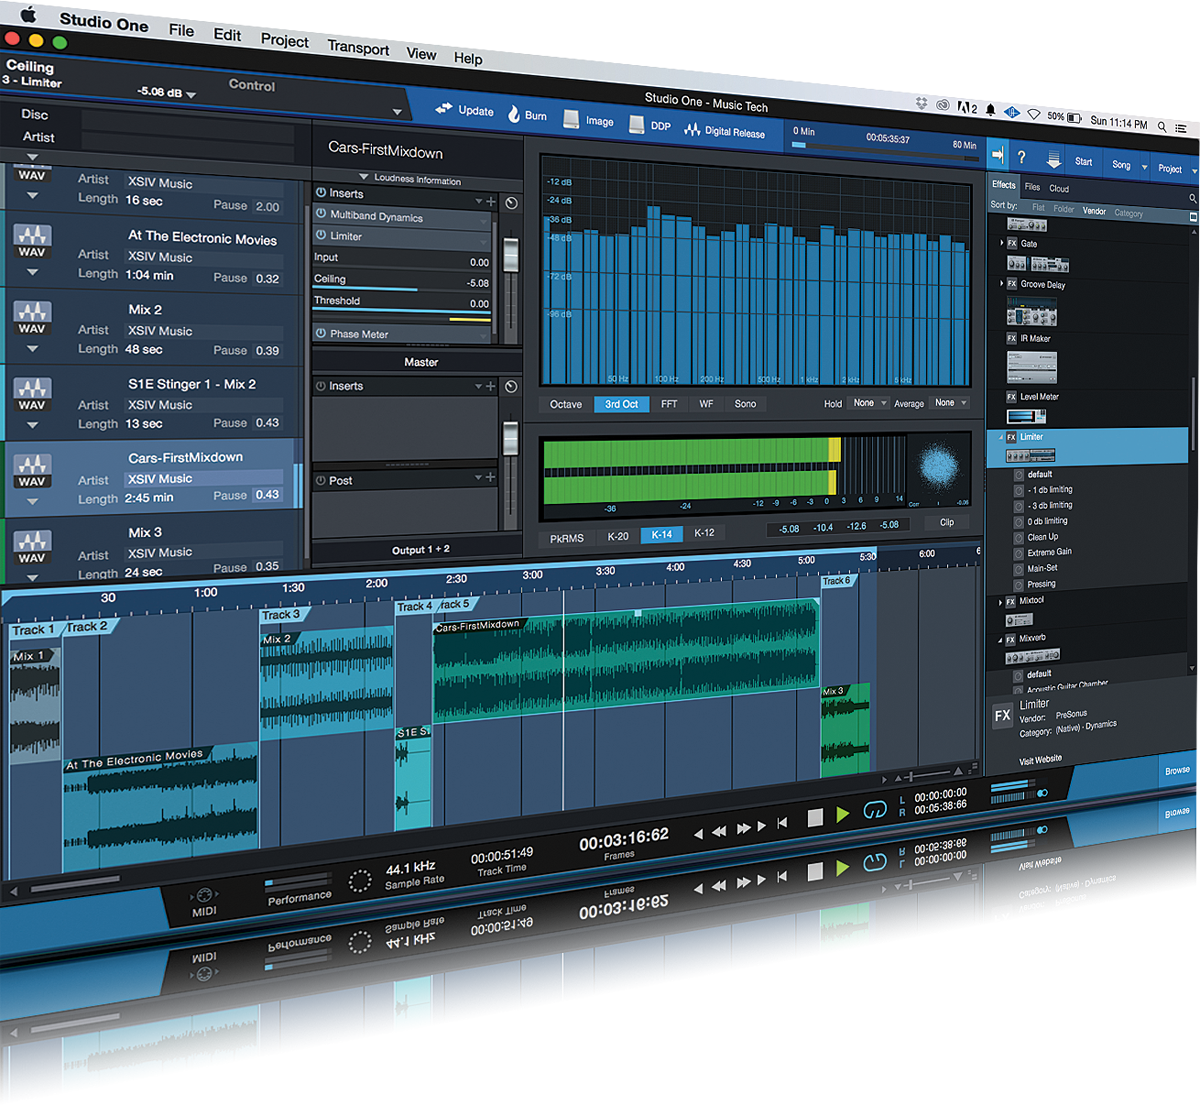 Studio One - So What Is All The Fuss About? - MusicTech